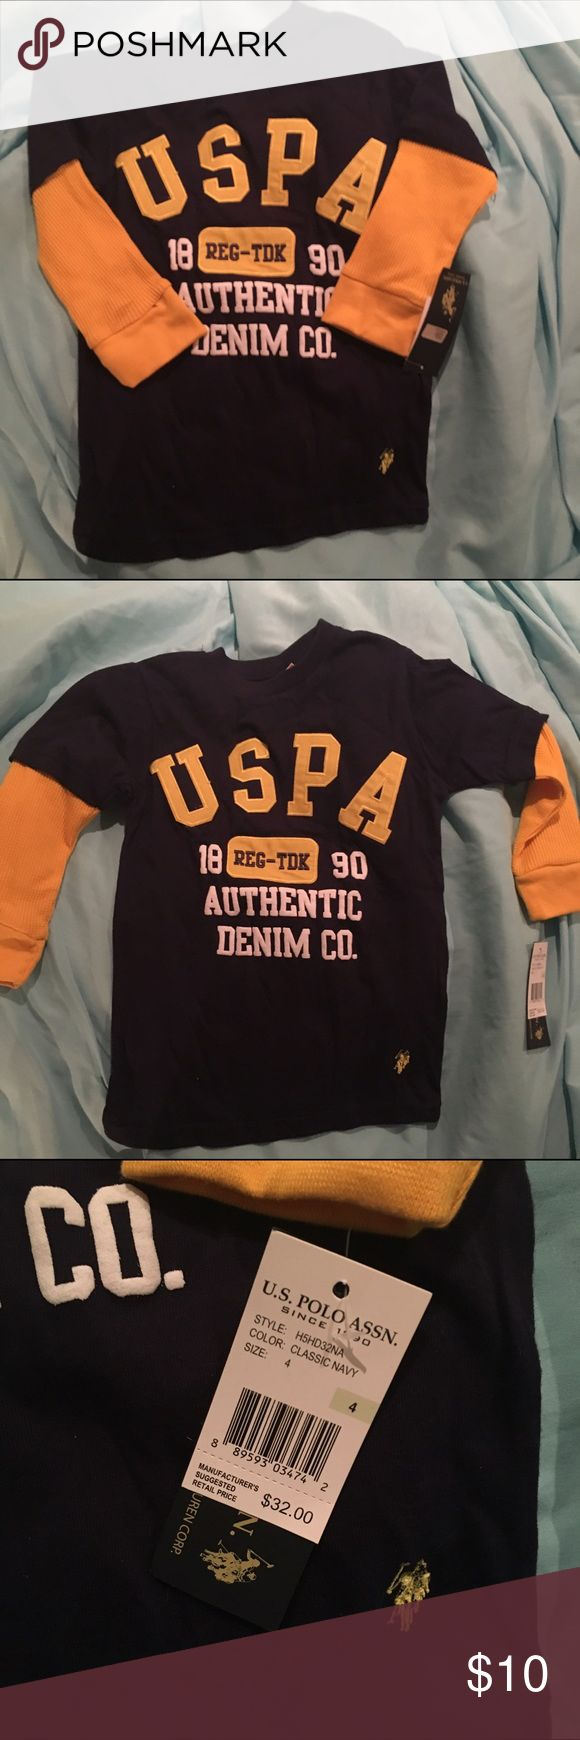 U.S. Polo Association Boys Shirt New with tag. Recently purchased. Long sleeve. Size 4. Cheaper on merc.... U.S. Polo Assn. Shirts & Tops Tees - Long Sleeve